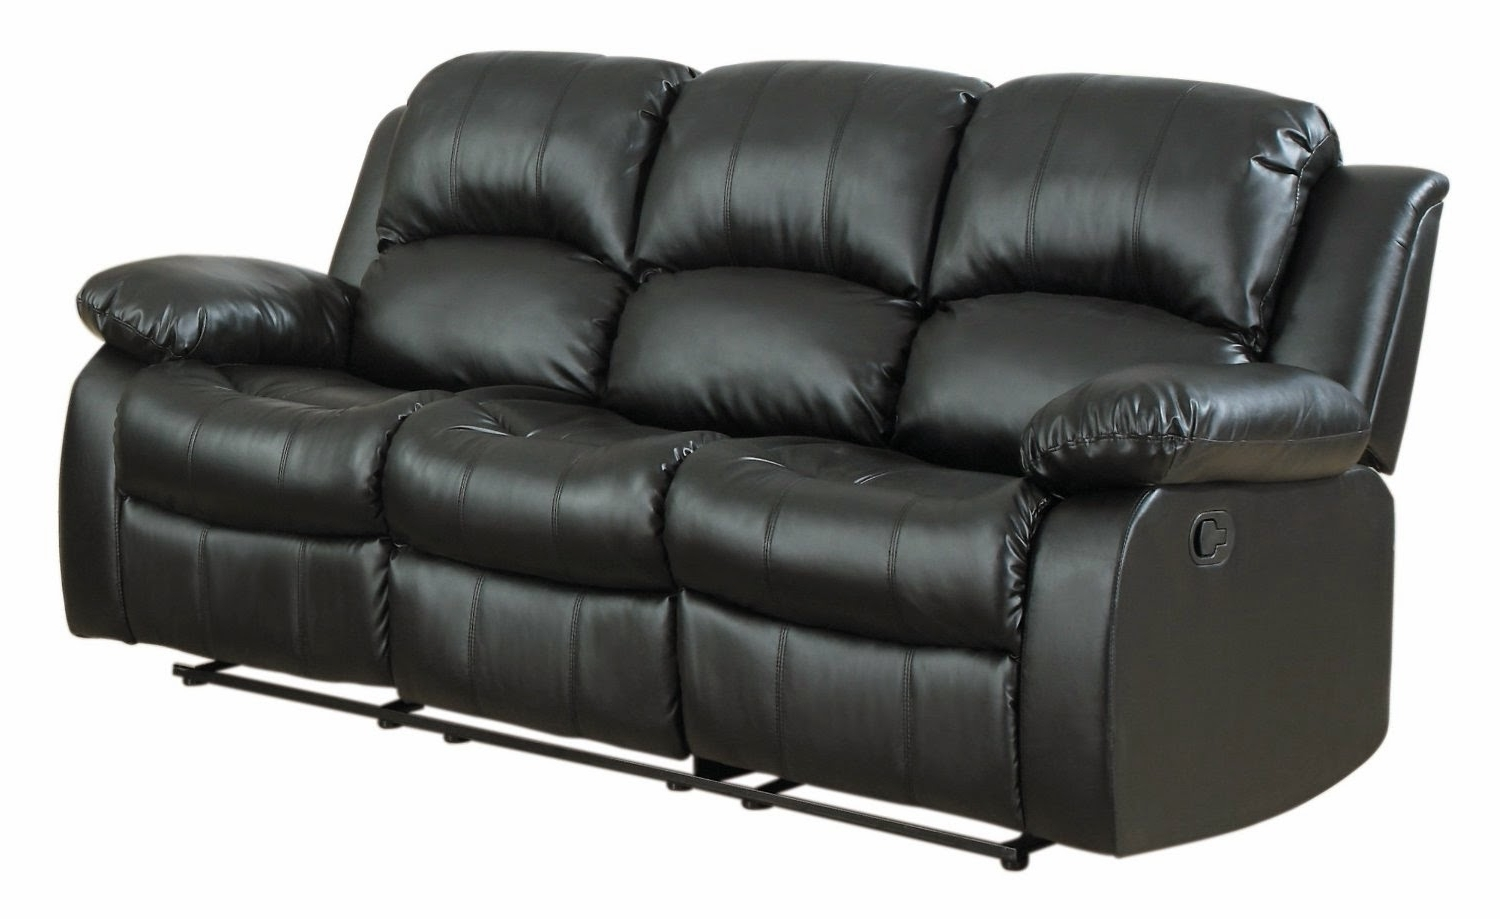 Famous Berkline Sofas Throughout Reclining Sofas For Sale: Berkline Leather Reclining Sofa Costco (View 4 of 20)